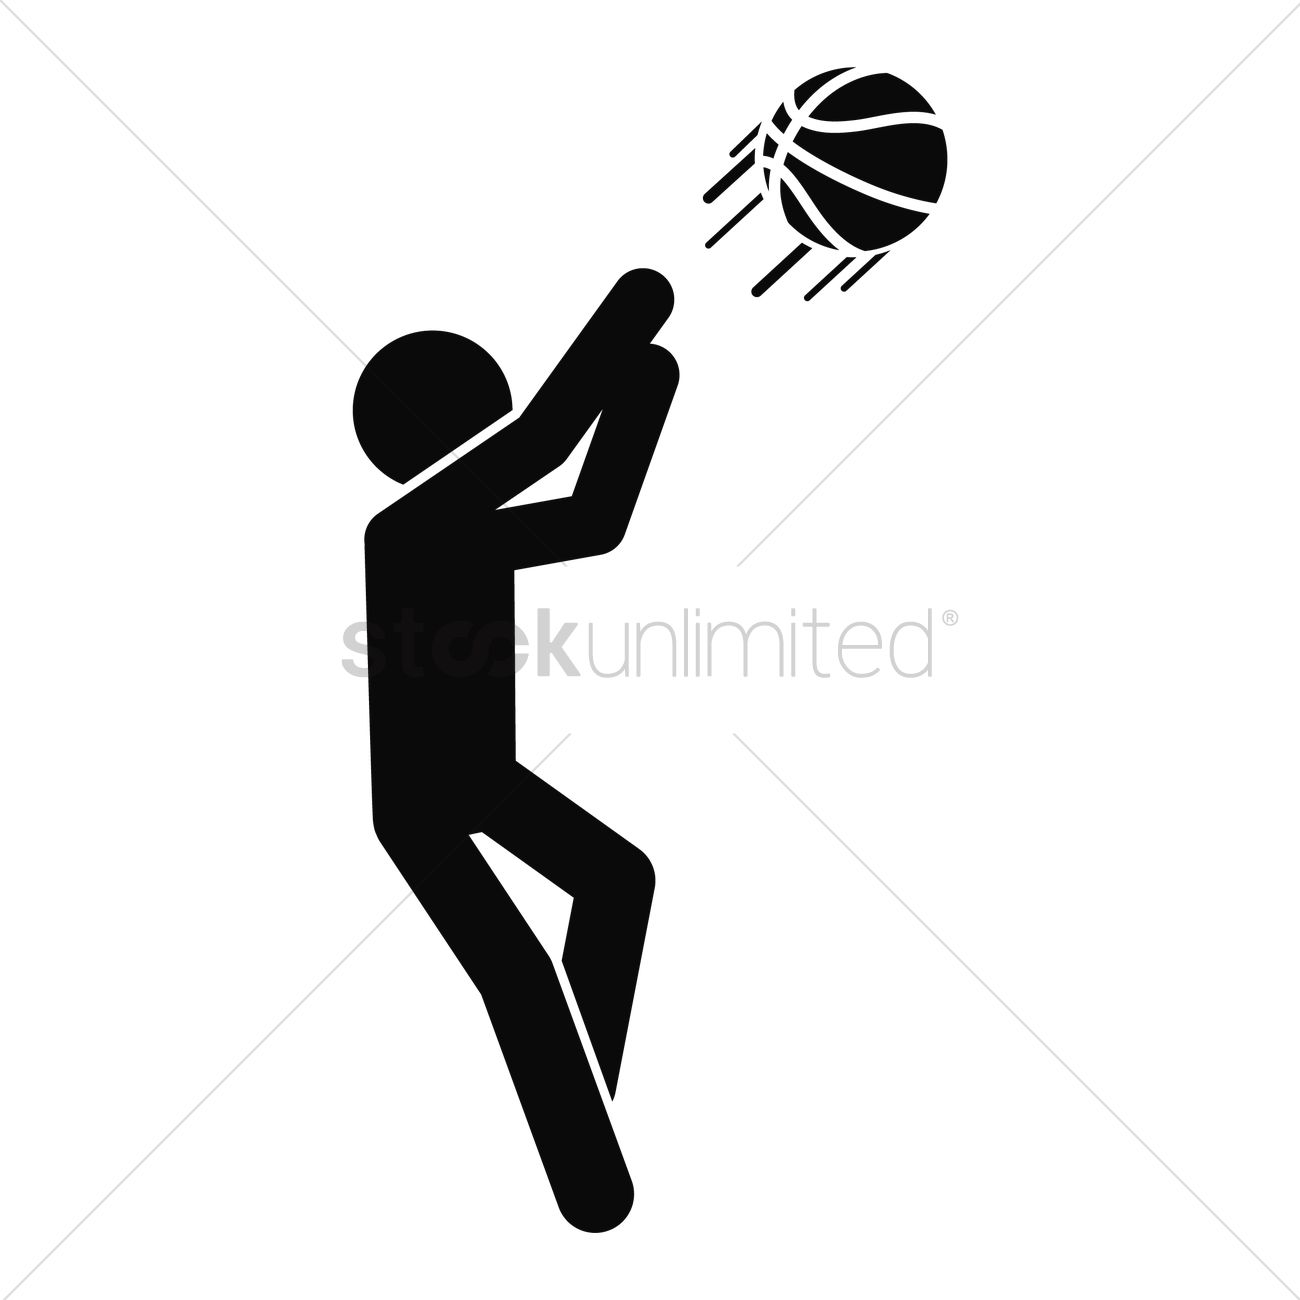 basketball player vector image 1979522 stockunlimited rh stockunlimited com basketball player vector free basketball player vector silhouette